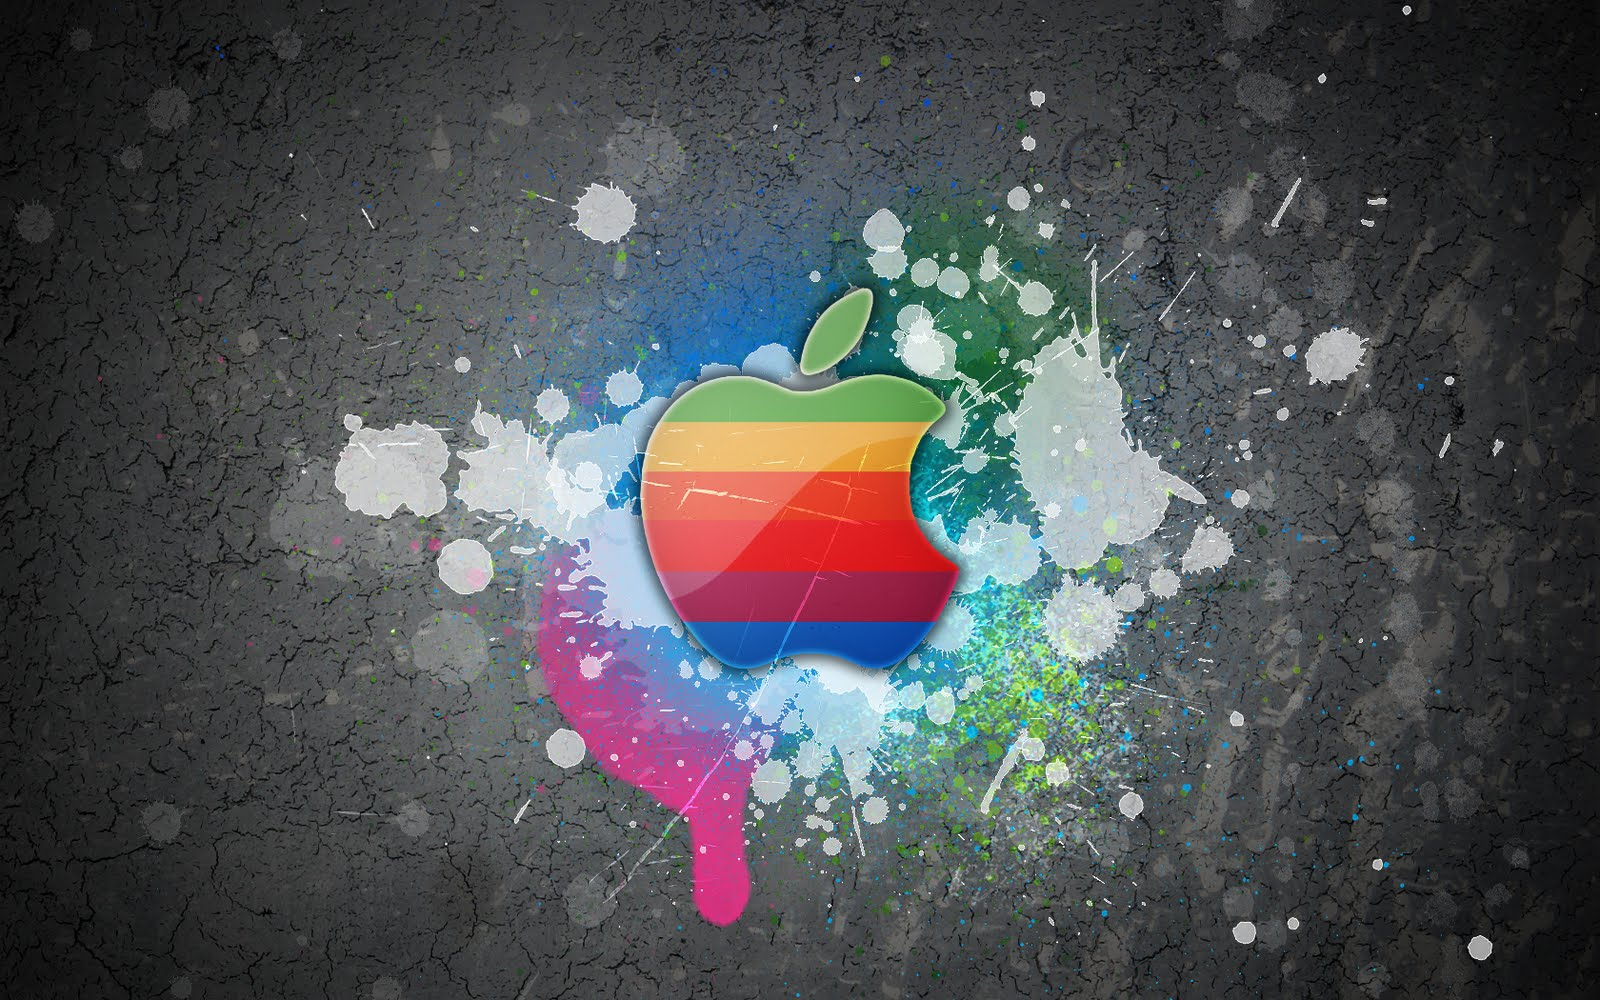 apple wallpaper desktop black apple wallpaper apple mac wallpaper 1600x1000